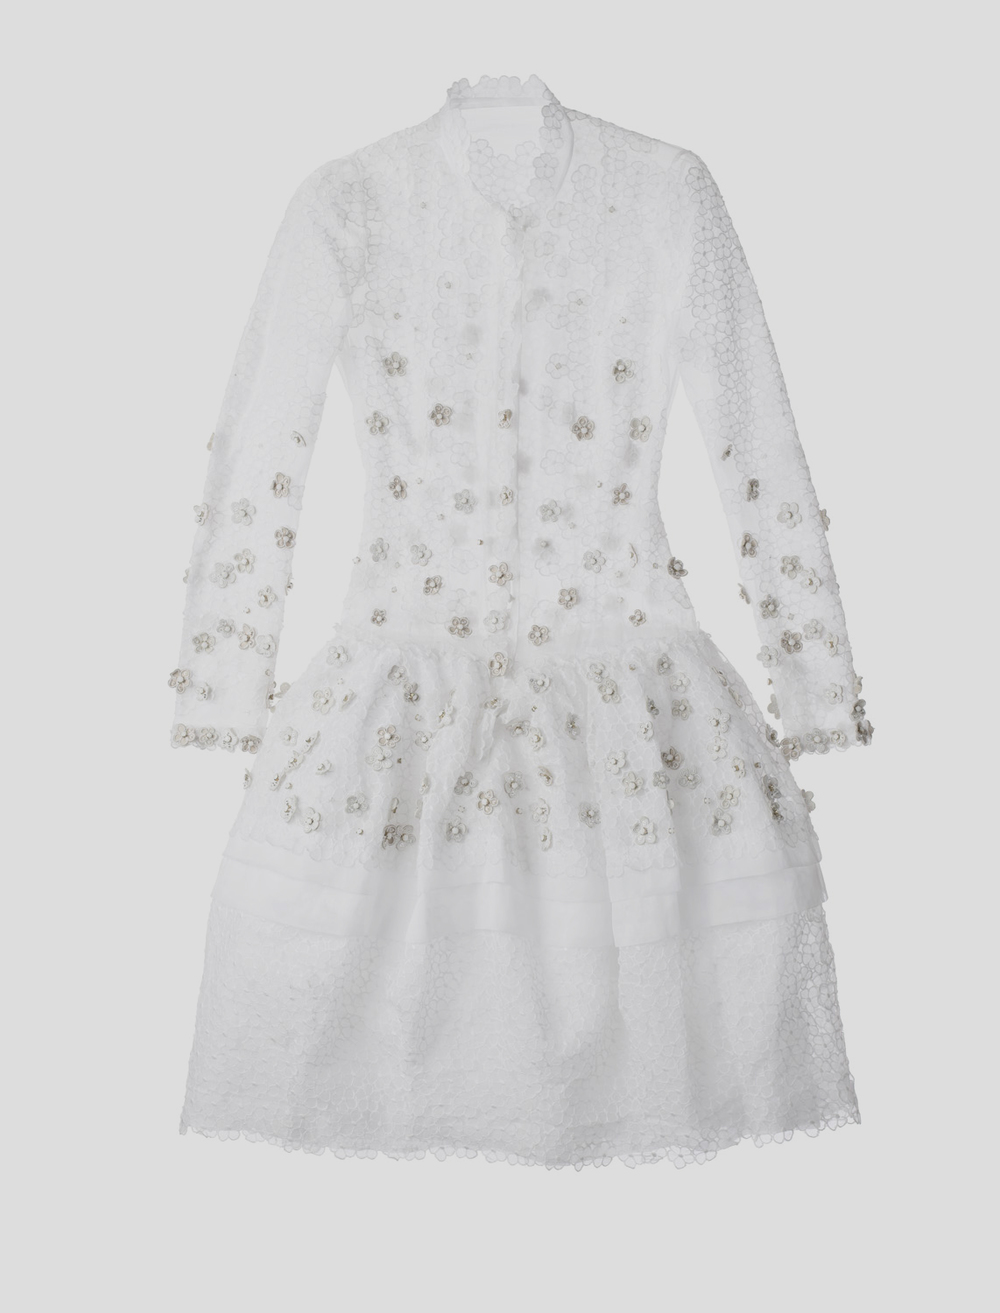 184 white lace dress.jpg